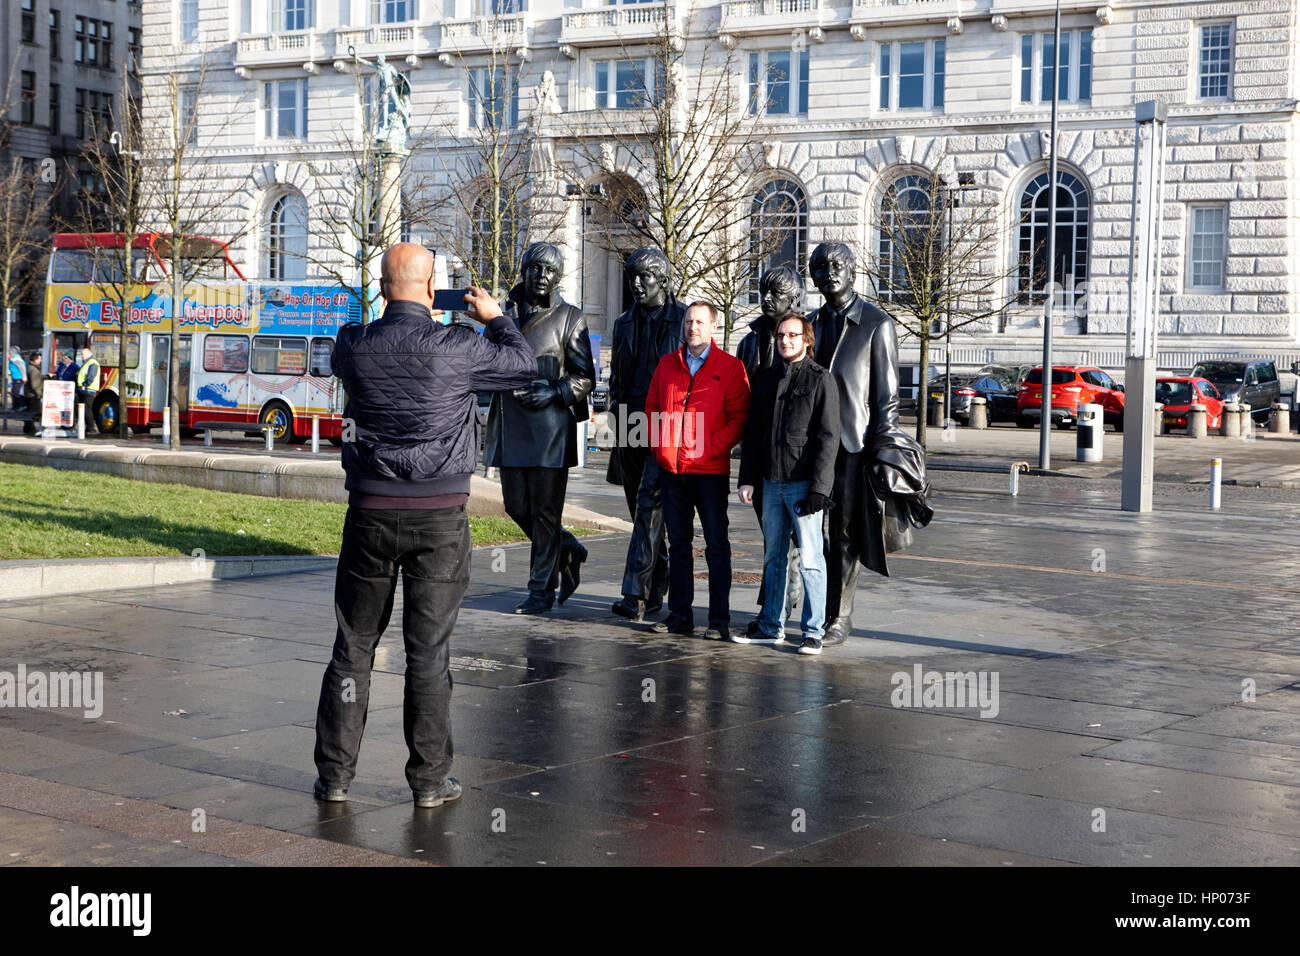 tourists taking photos with the beatles statue in front of pier head landmark buildings liverpool uk - Stock Image